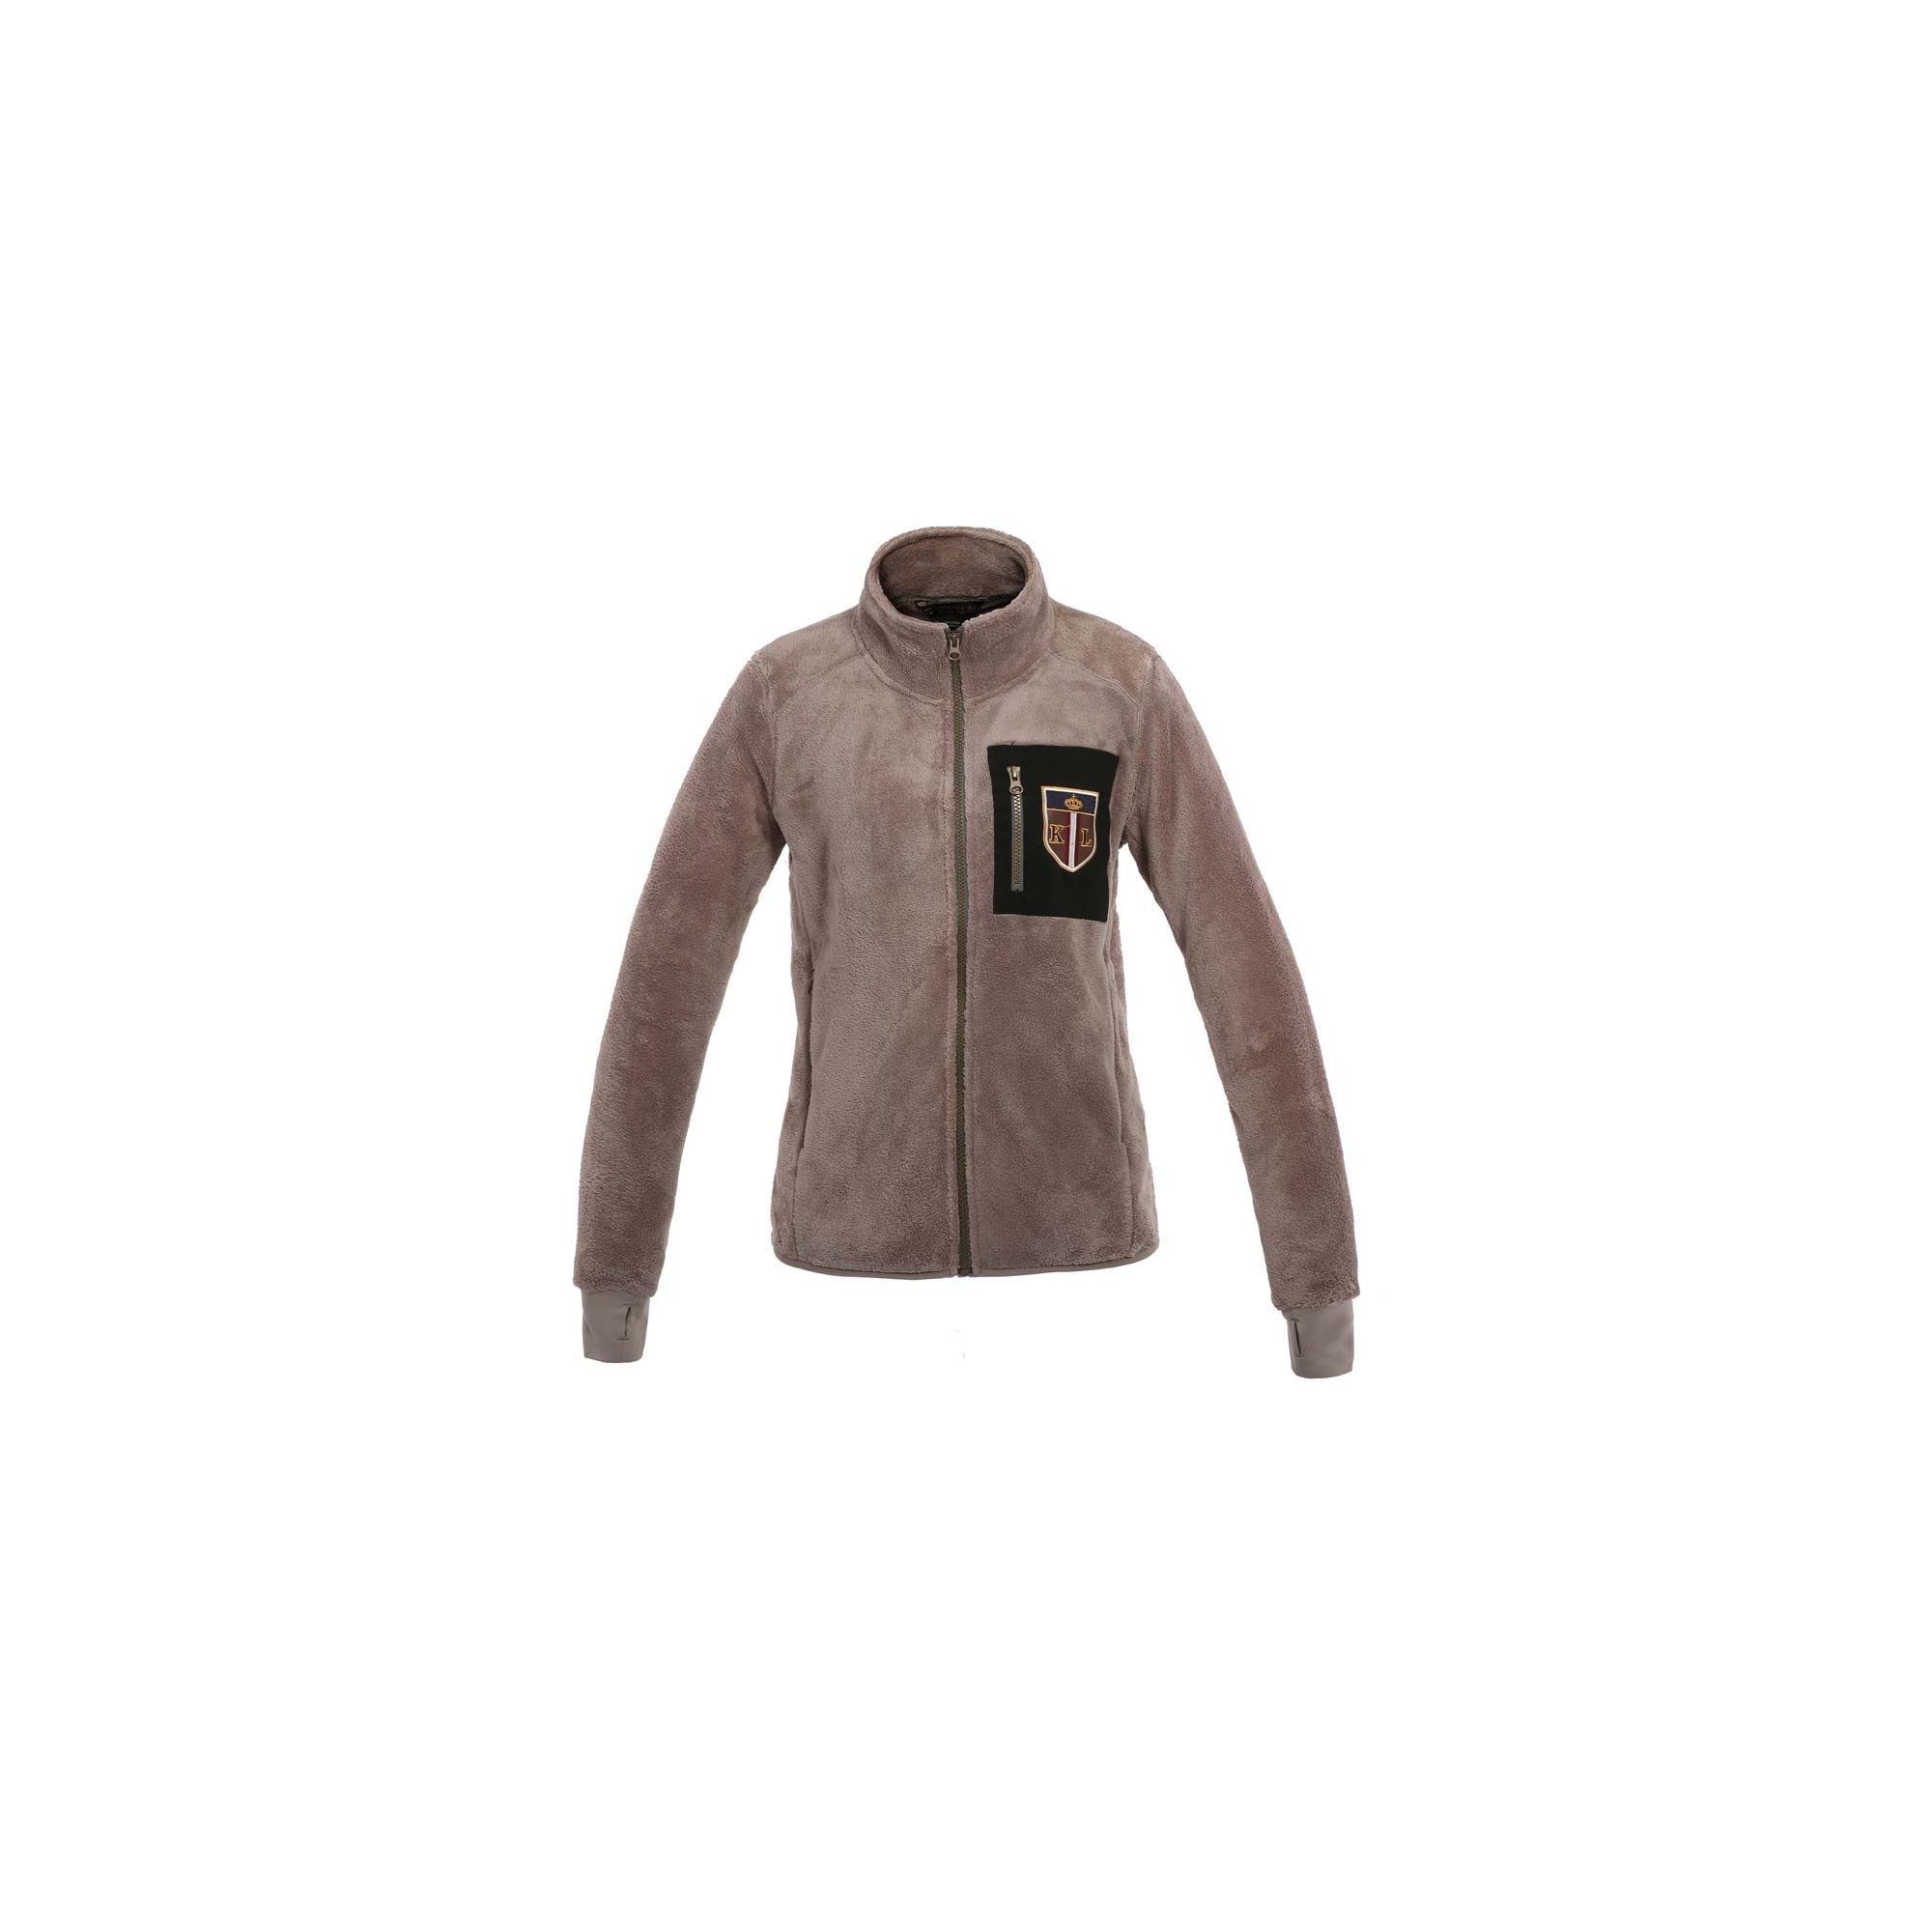 Unisex Fleece Jackets | Outdoor Jacket